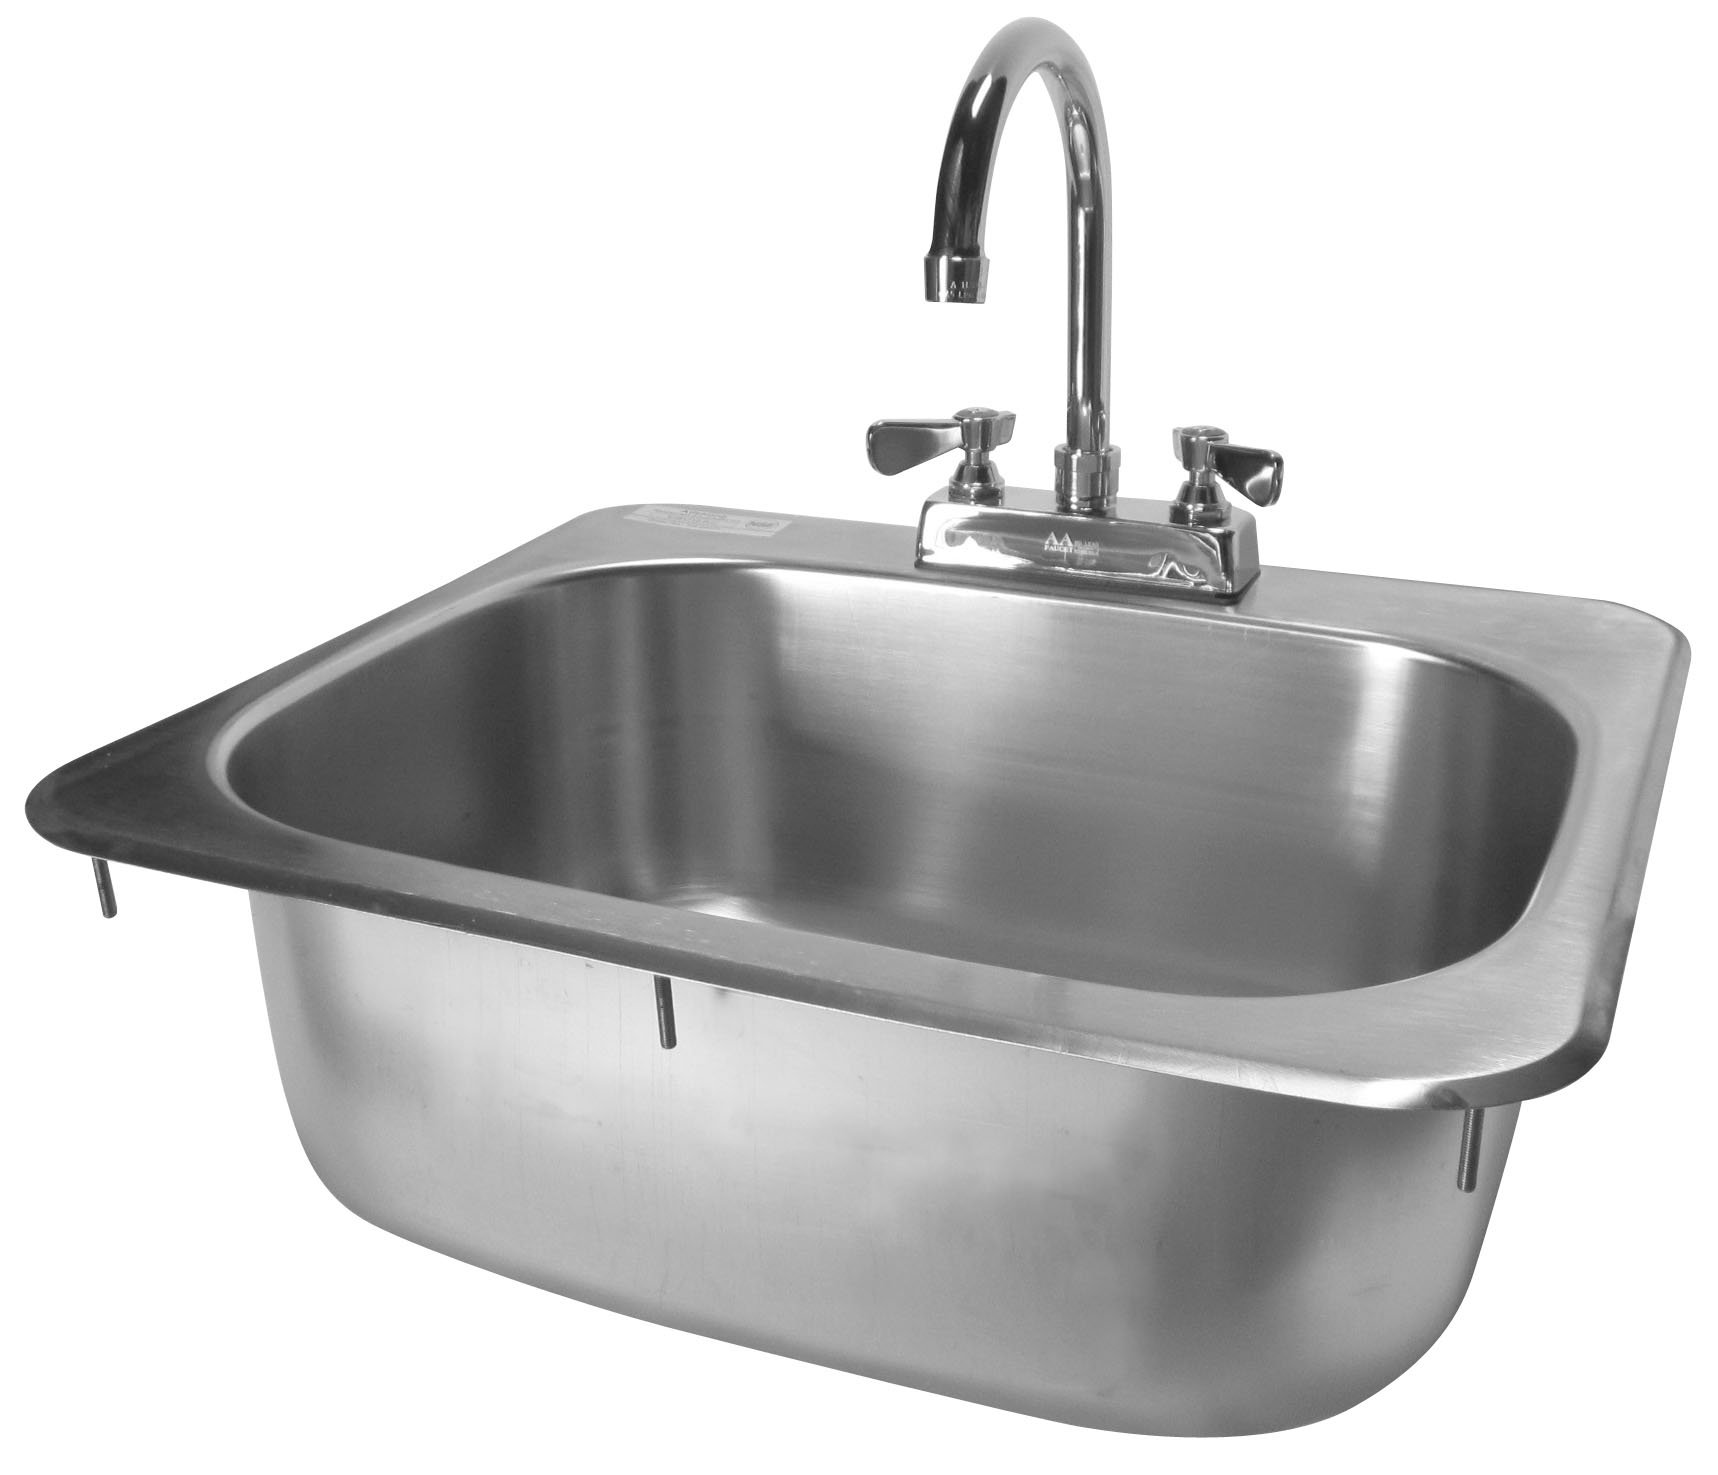 ACE Stainless Steel Drop in Hand Sink with No Lead Faucet and Strainer, 15-3/4 by 14-3/4-Inch by ACE